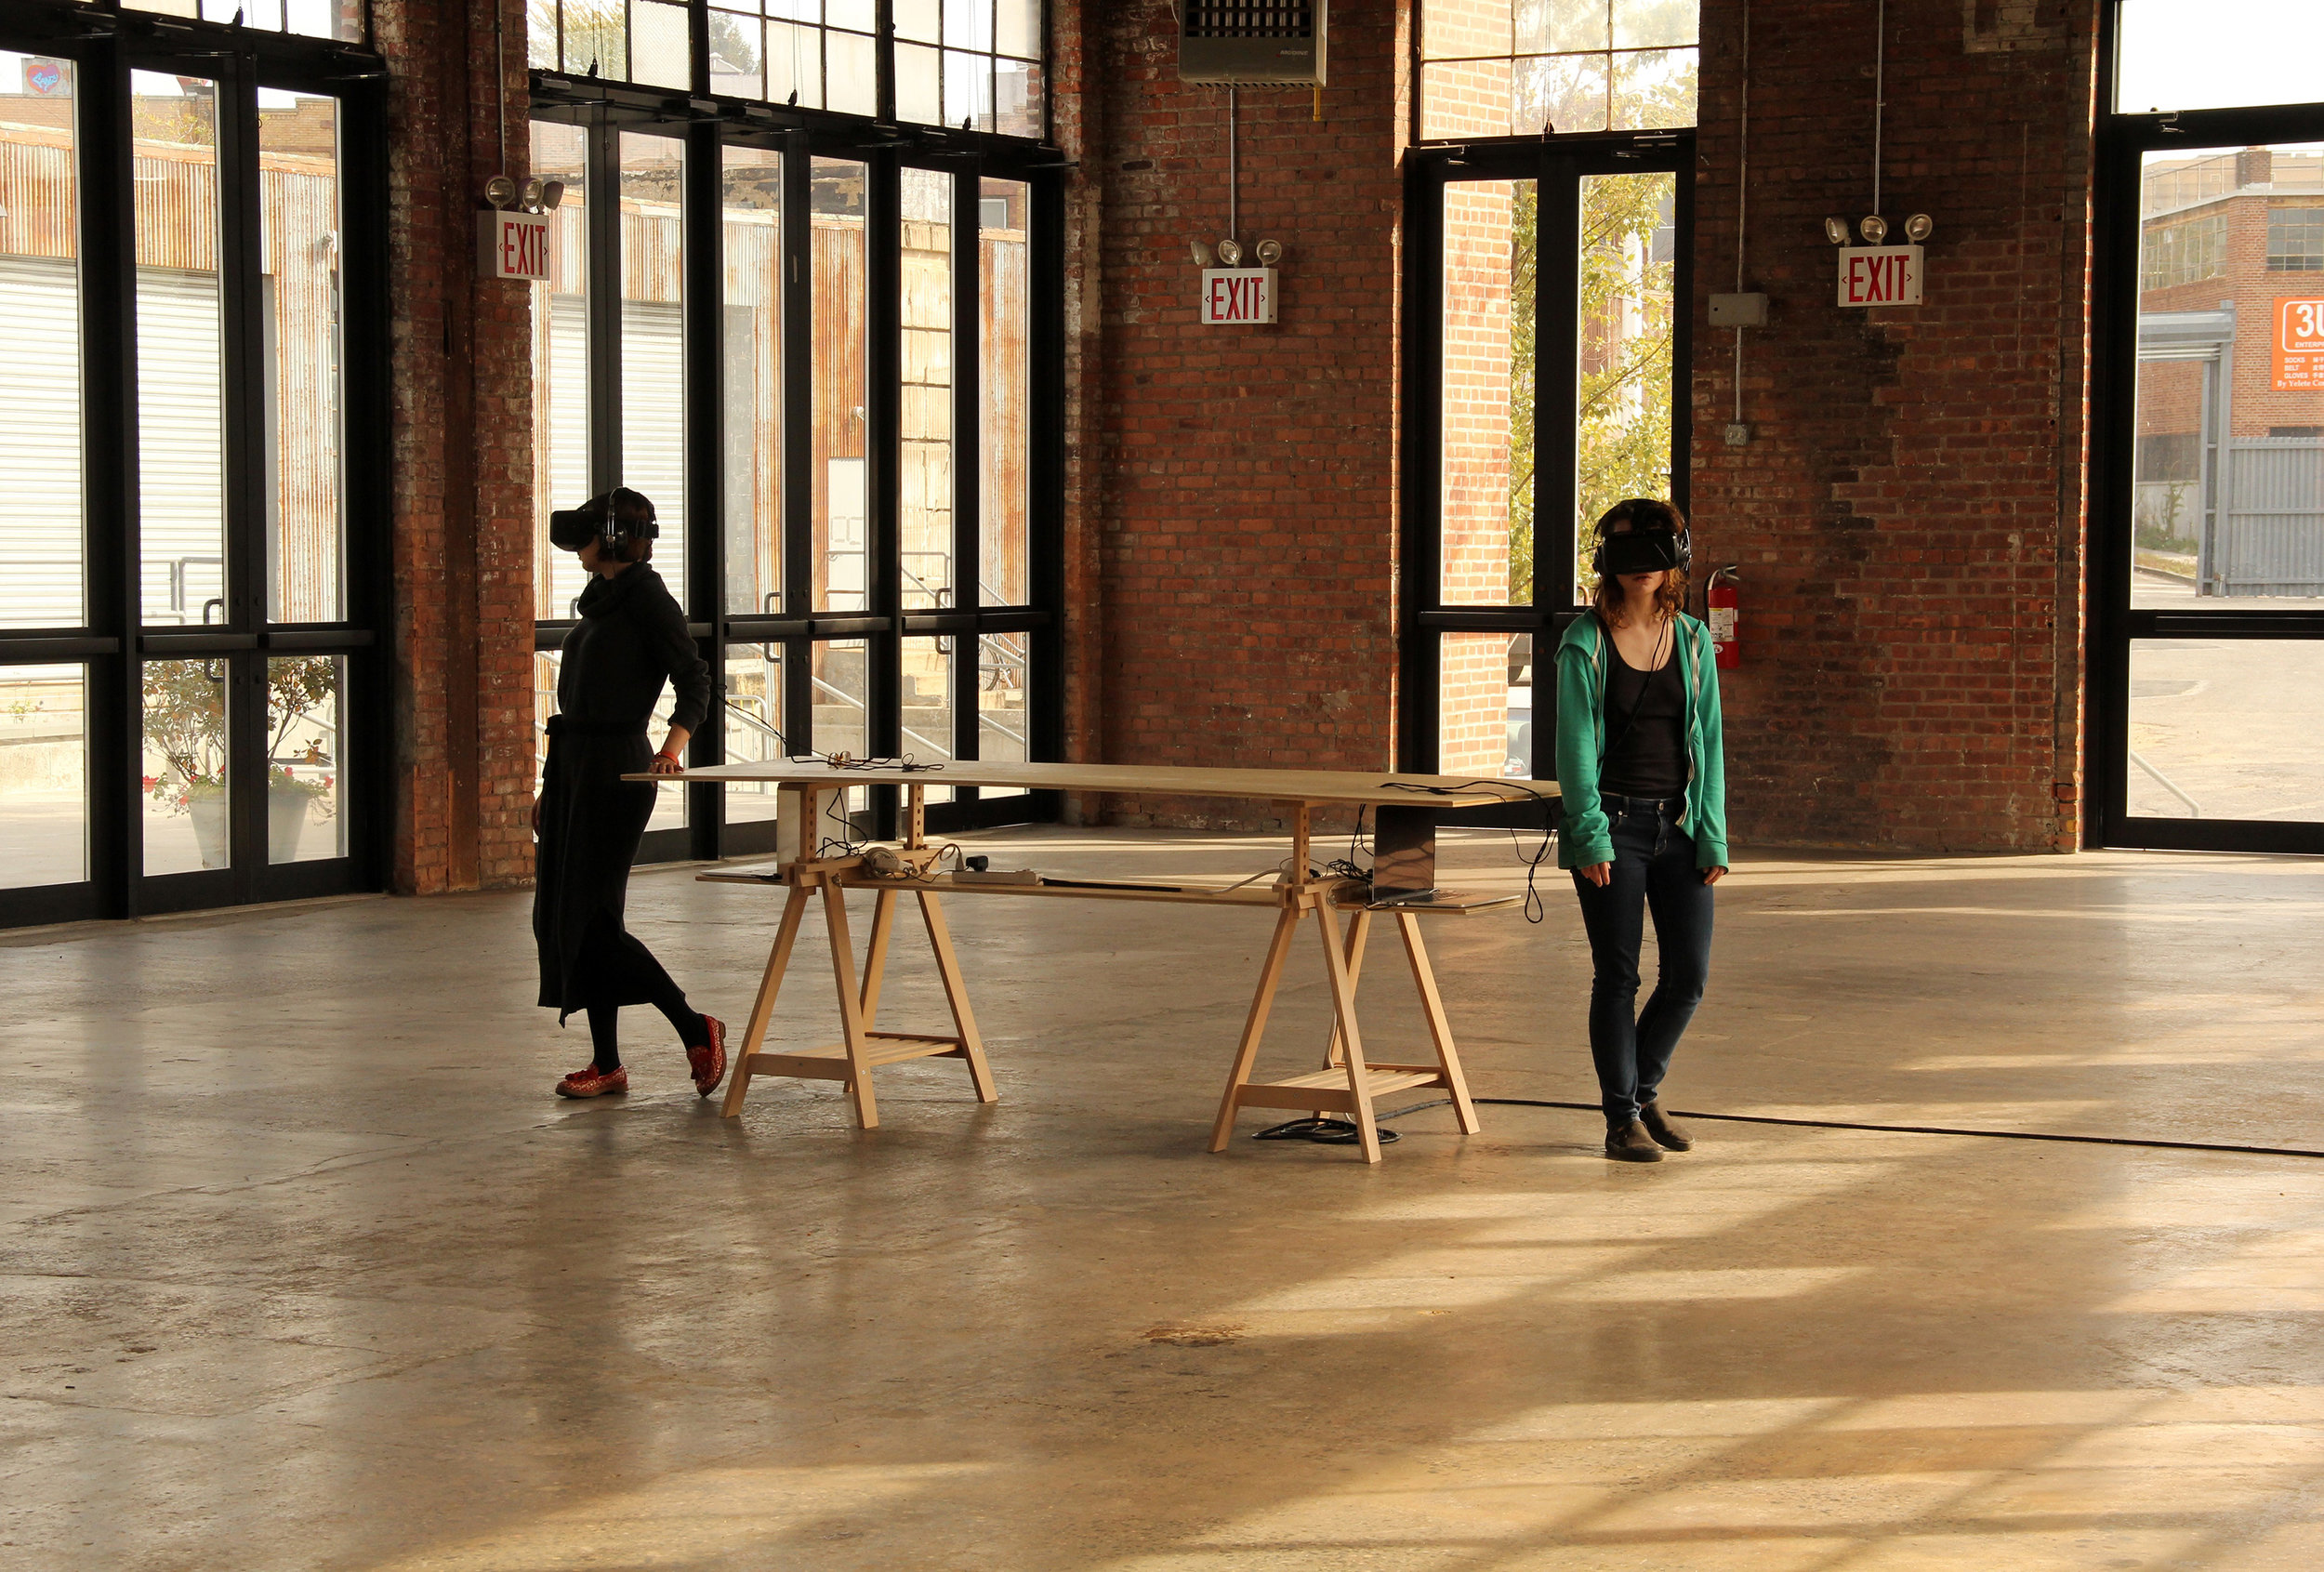 Dérive, Spaces Under Scrutiny, Québec Digital Art in NYC. The Knockdown Center, Queens (NY, USA), 2015.